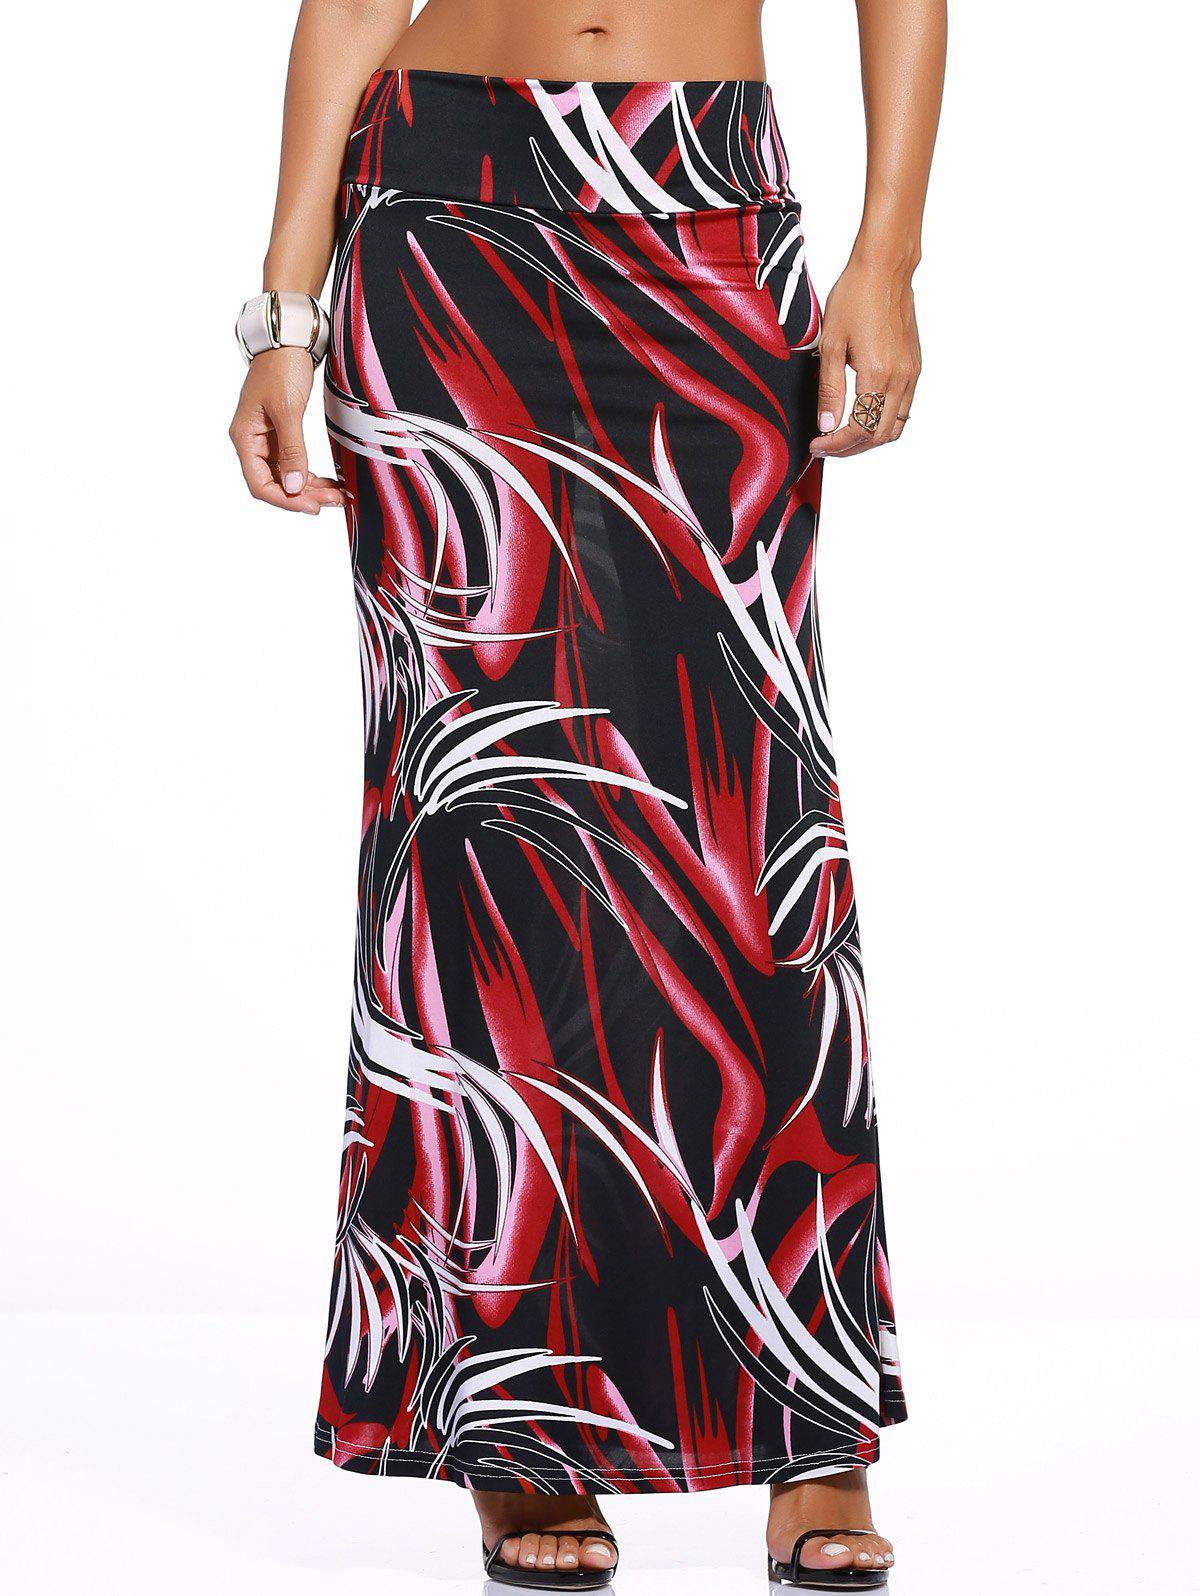 Chic Tie Dye Over Hip Skirt For Women - RED/BLACK 3XL